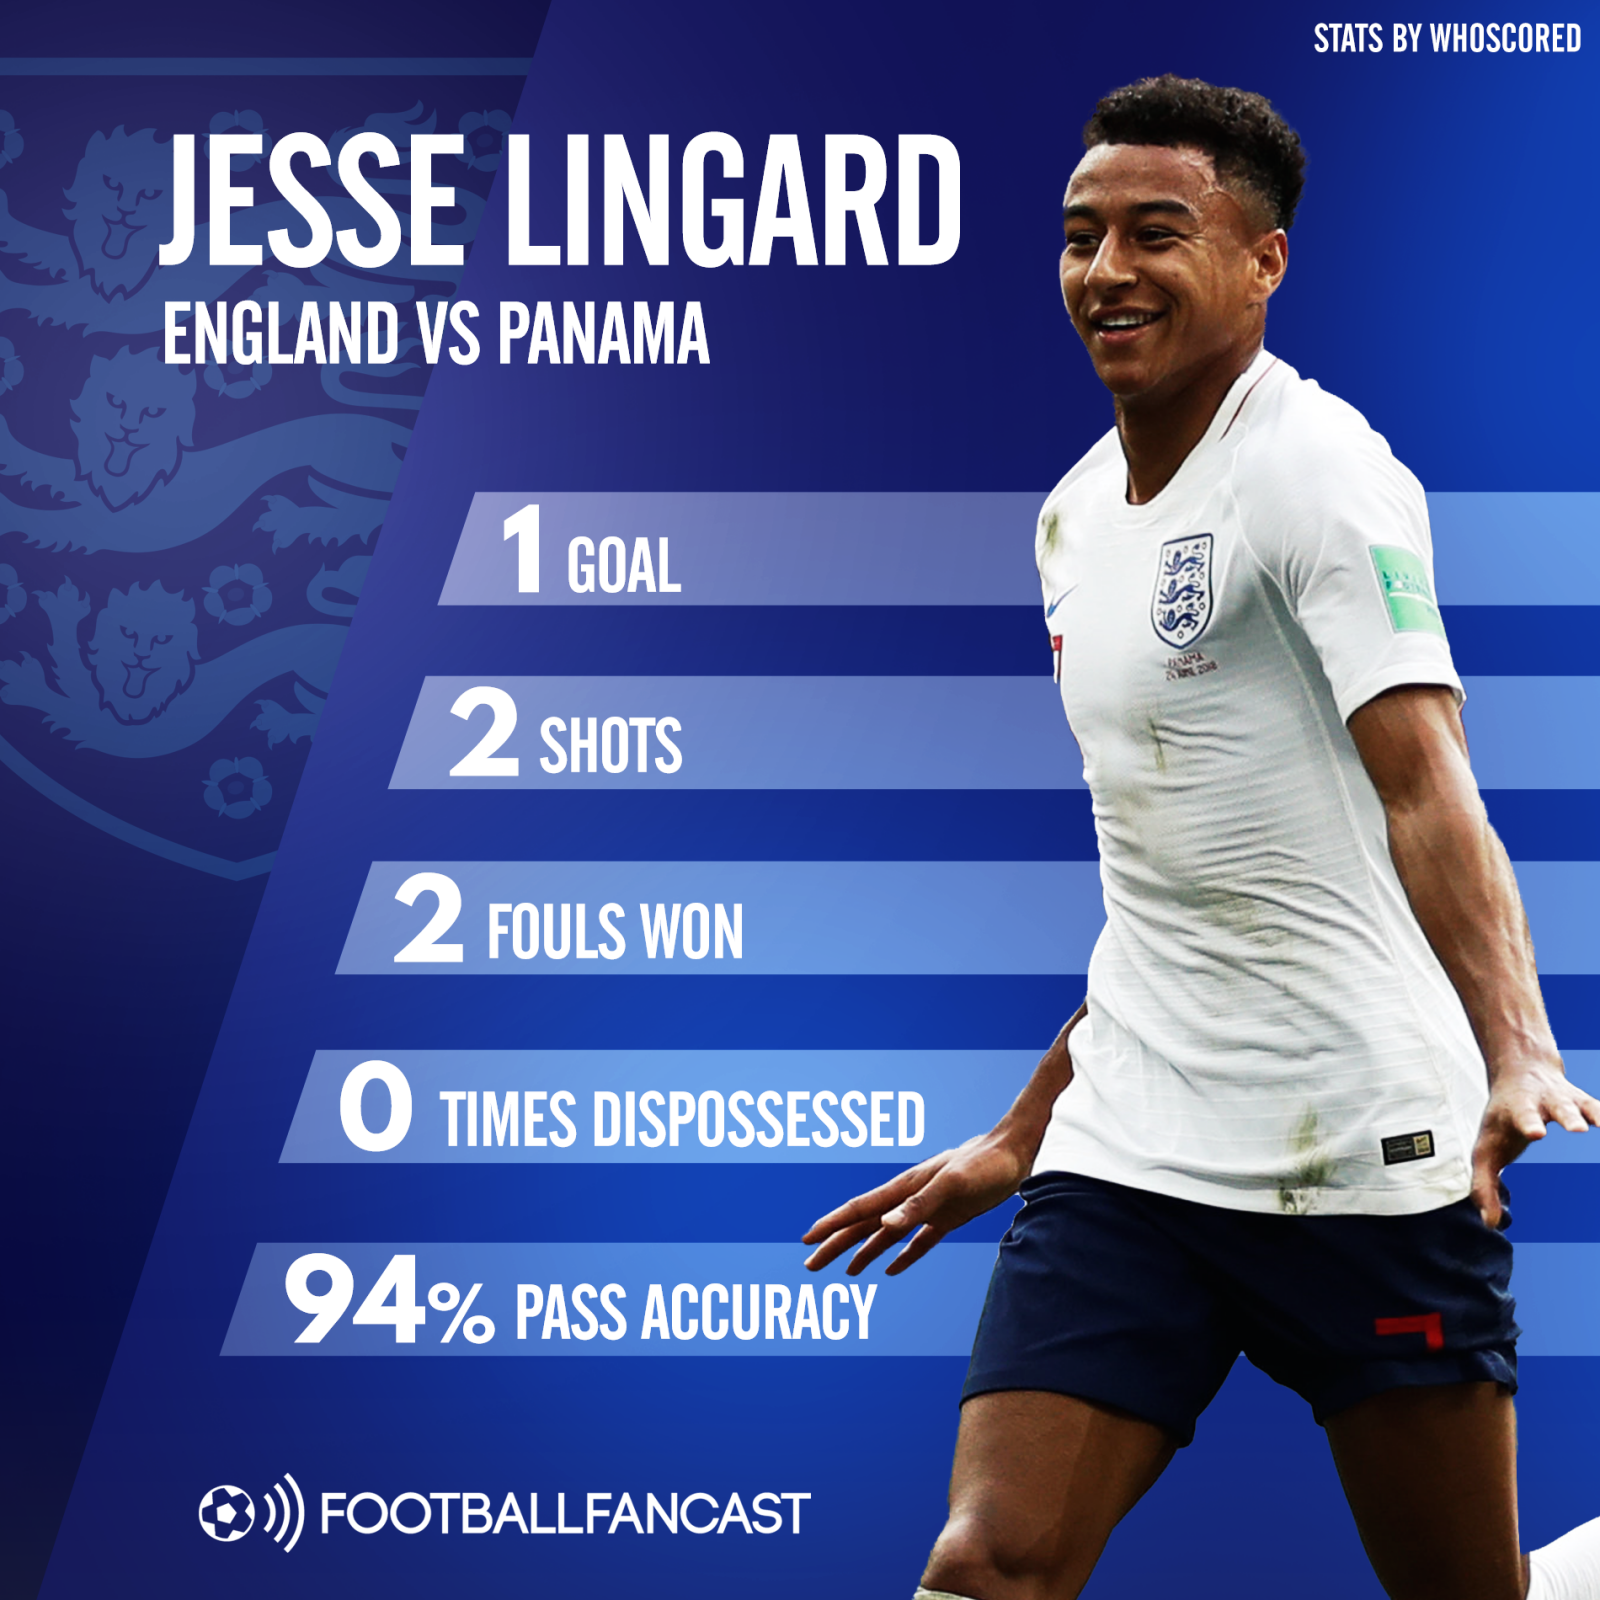 Jesse Lingard's stats from England 6-1 Panama